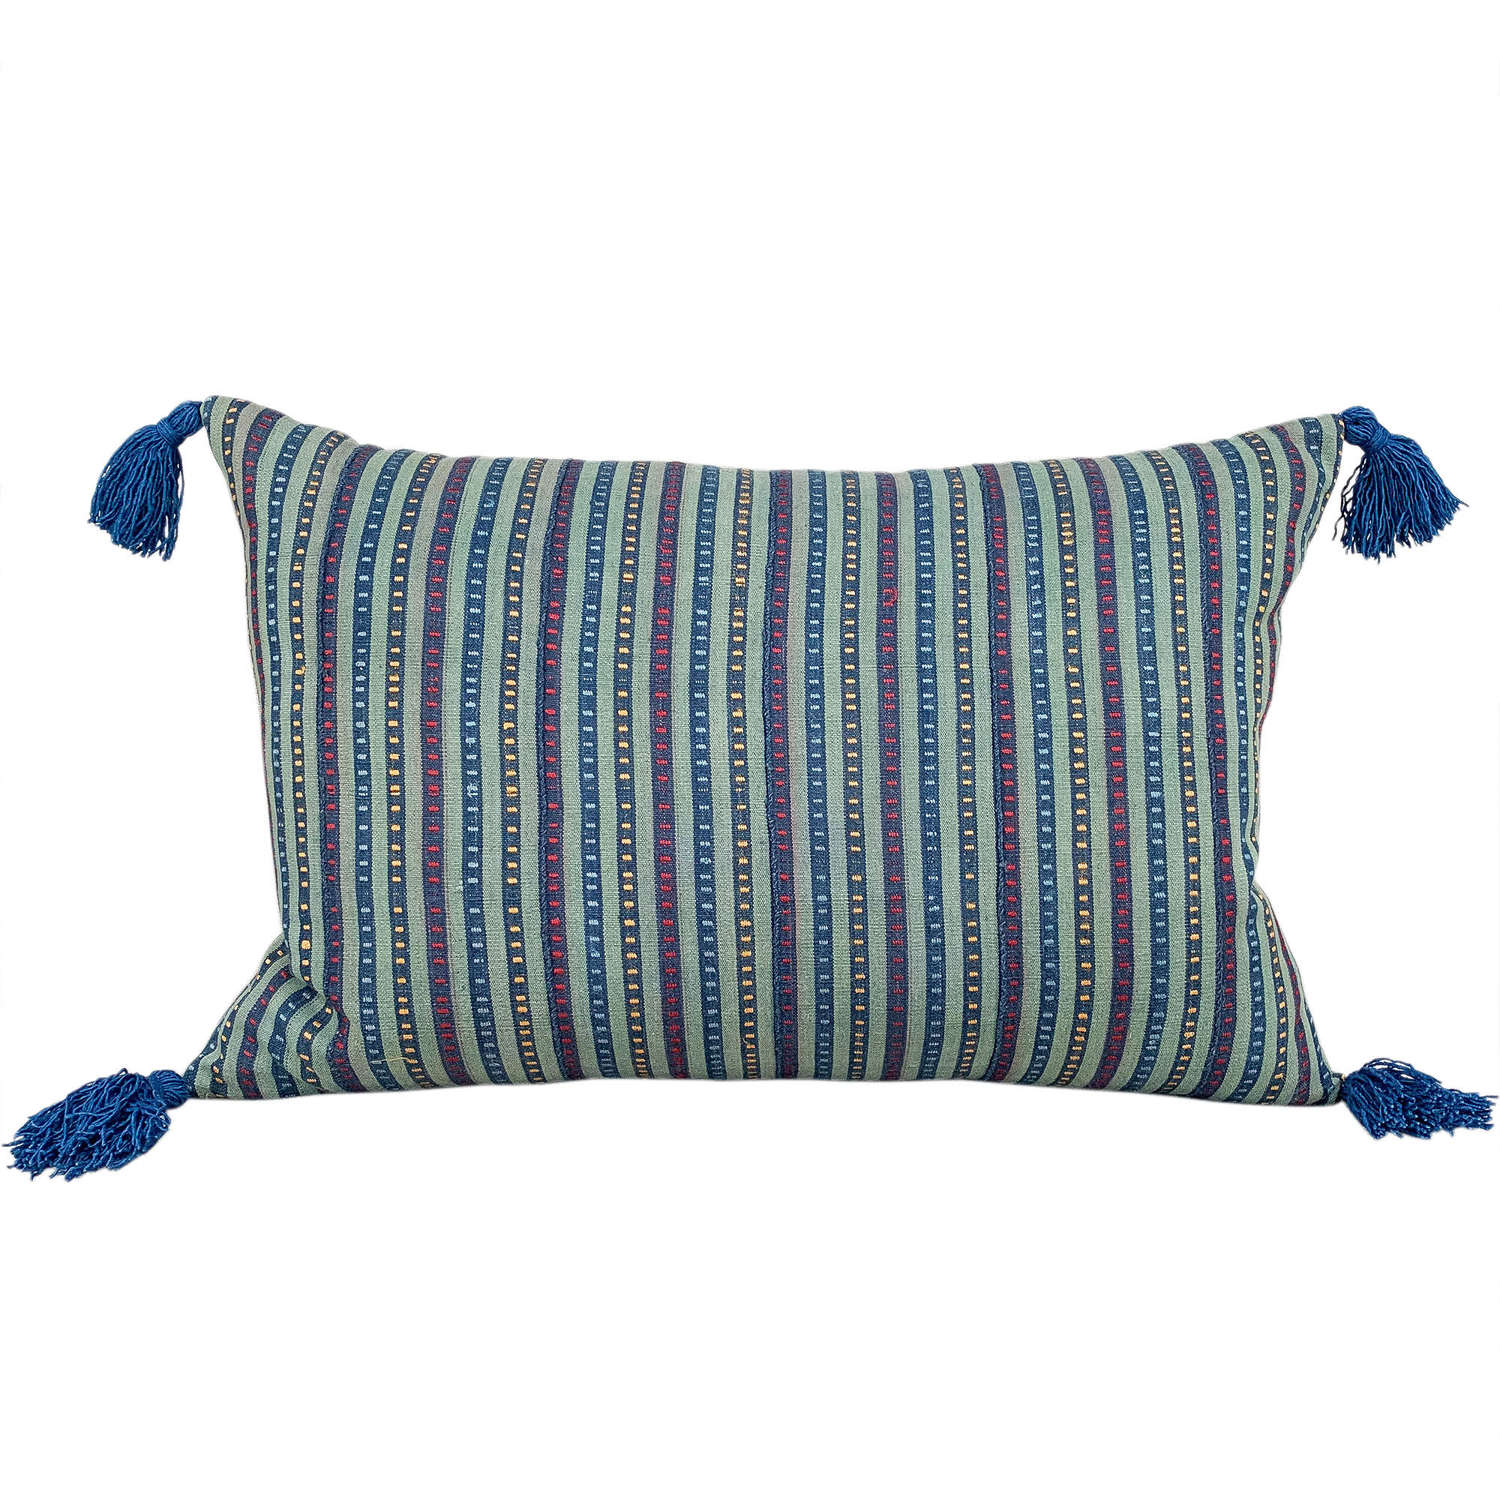 Green Ewe cushion with blue tassels